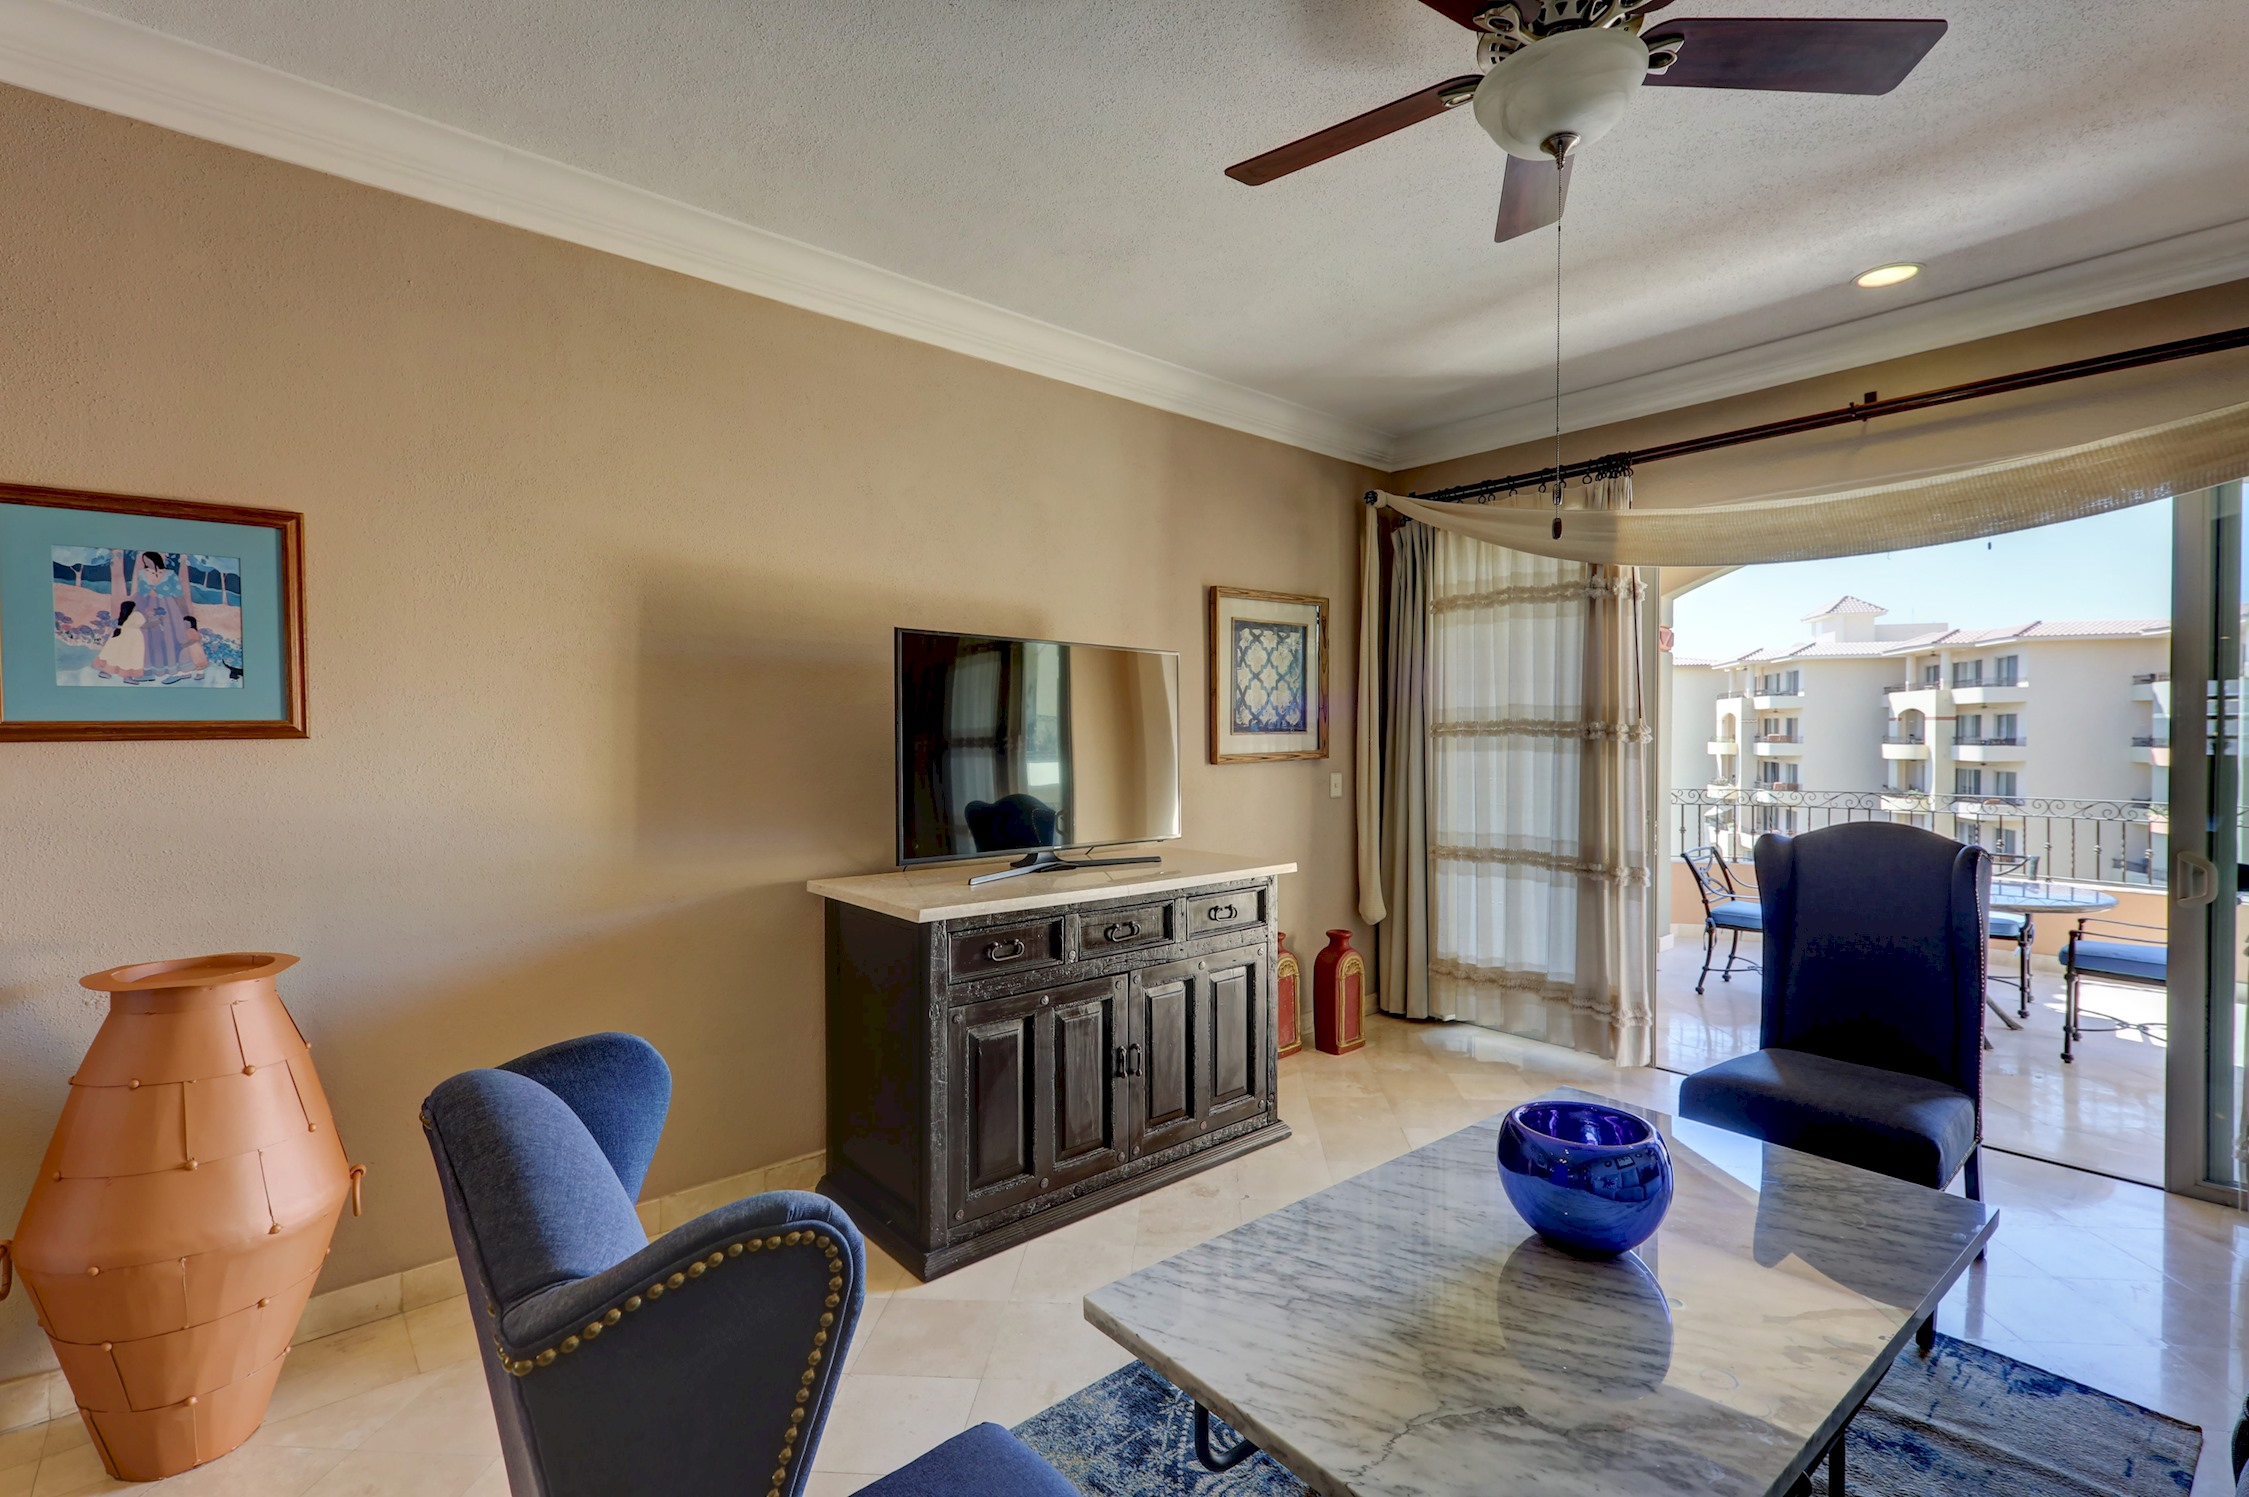 Apartment Premium Ocean View  2 Bedrooms - 3 Bathrooms photo 22367981